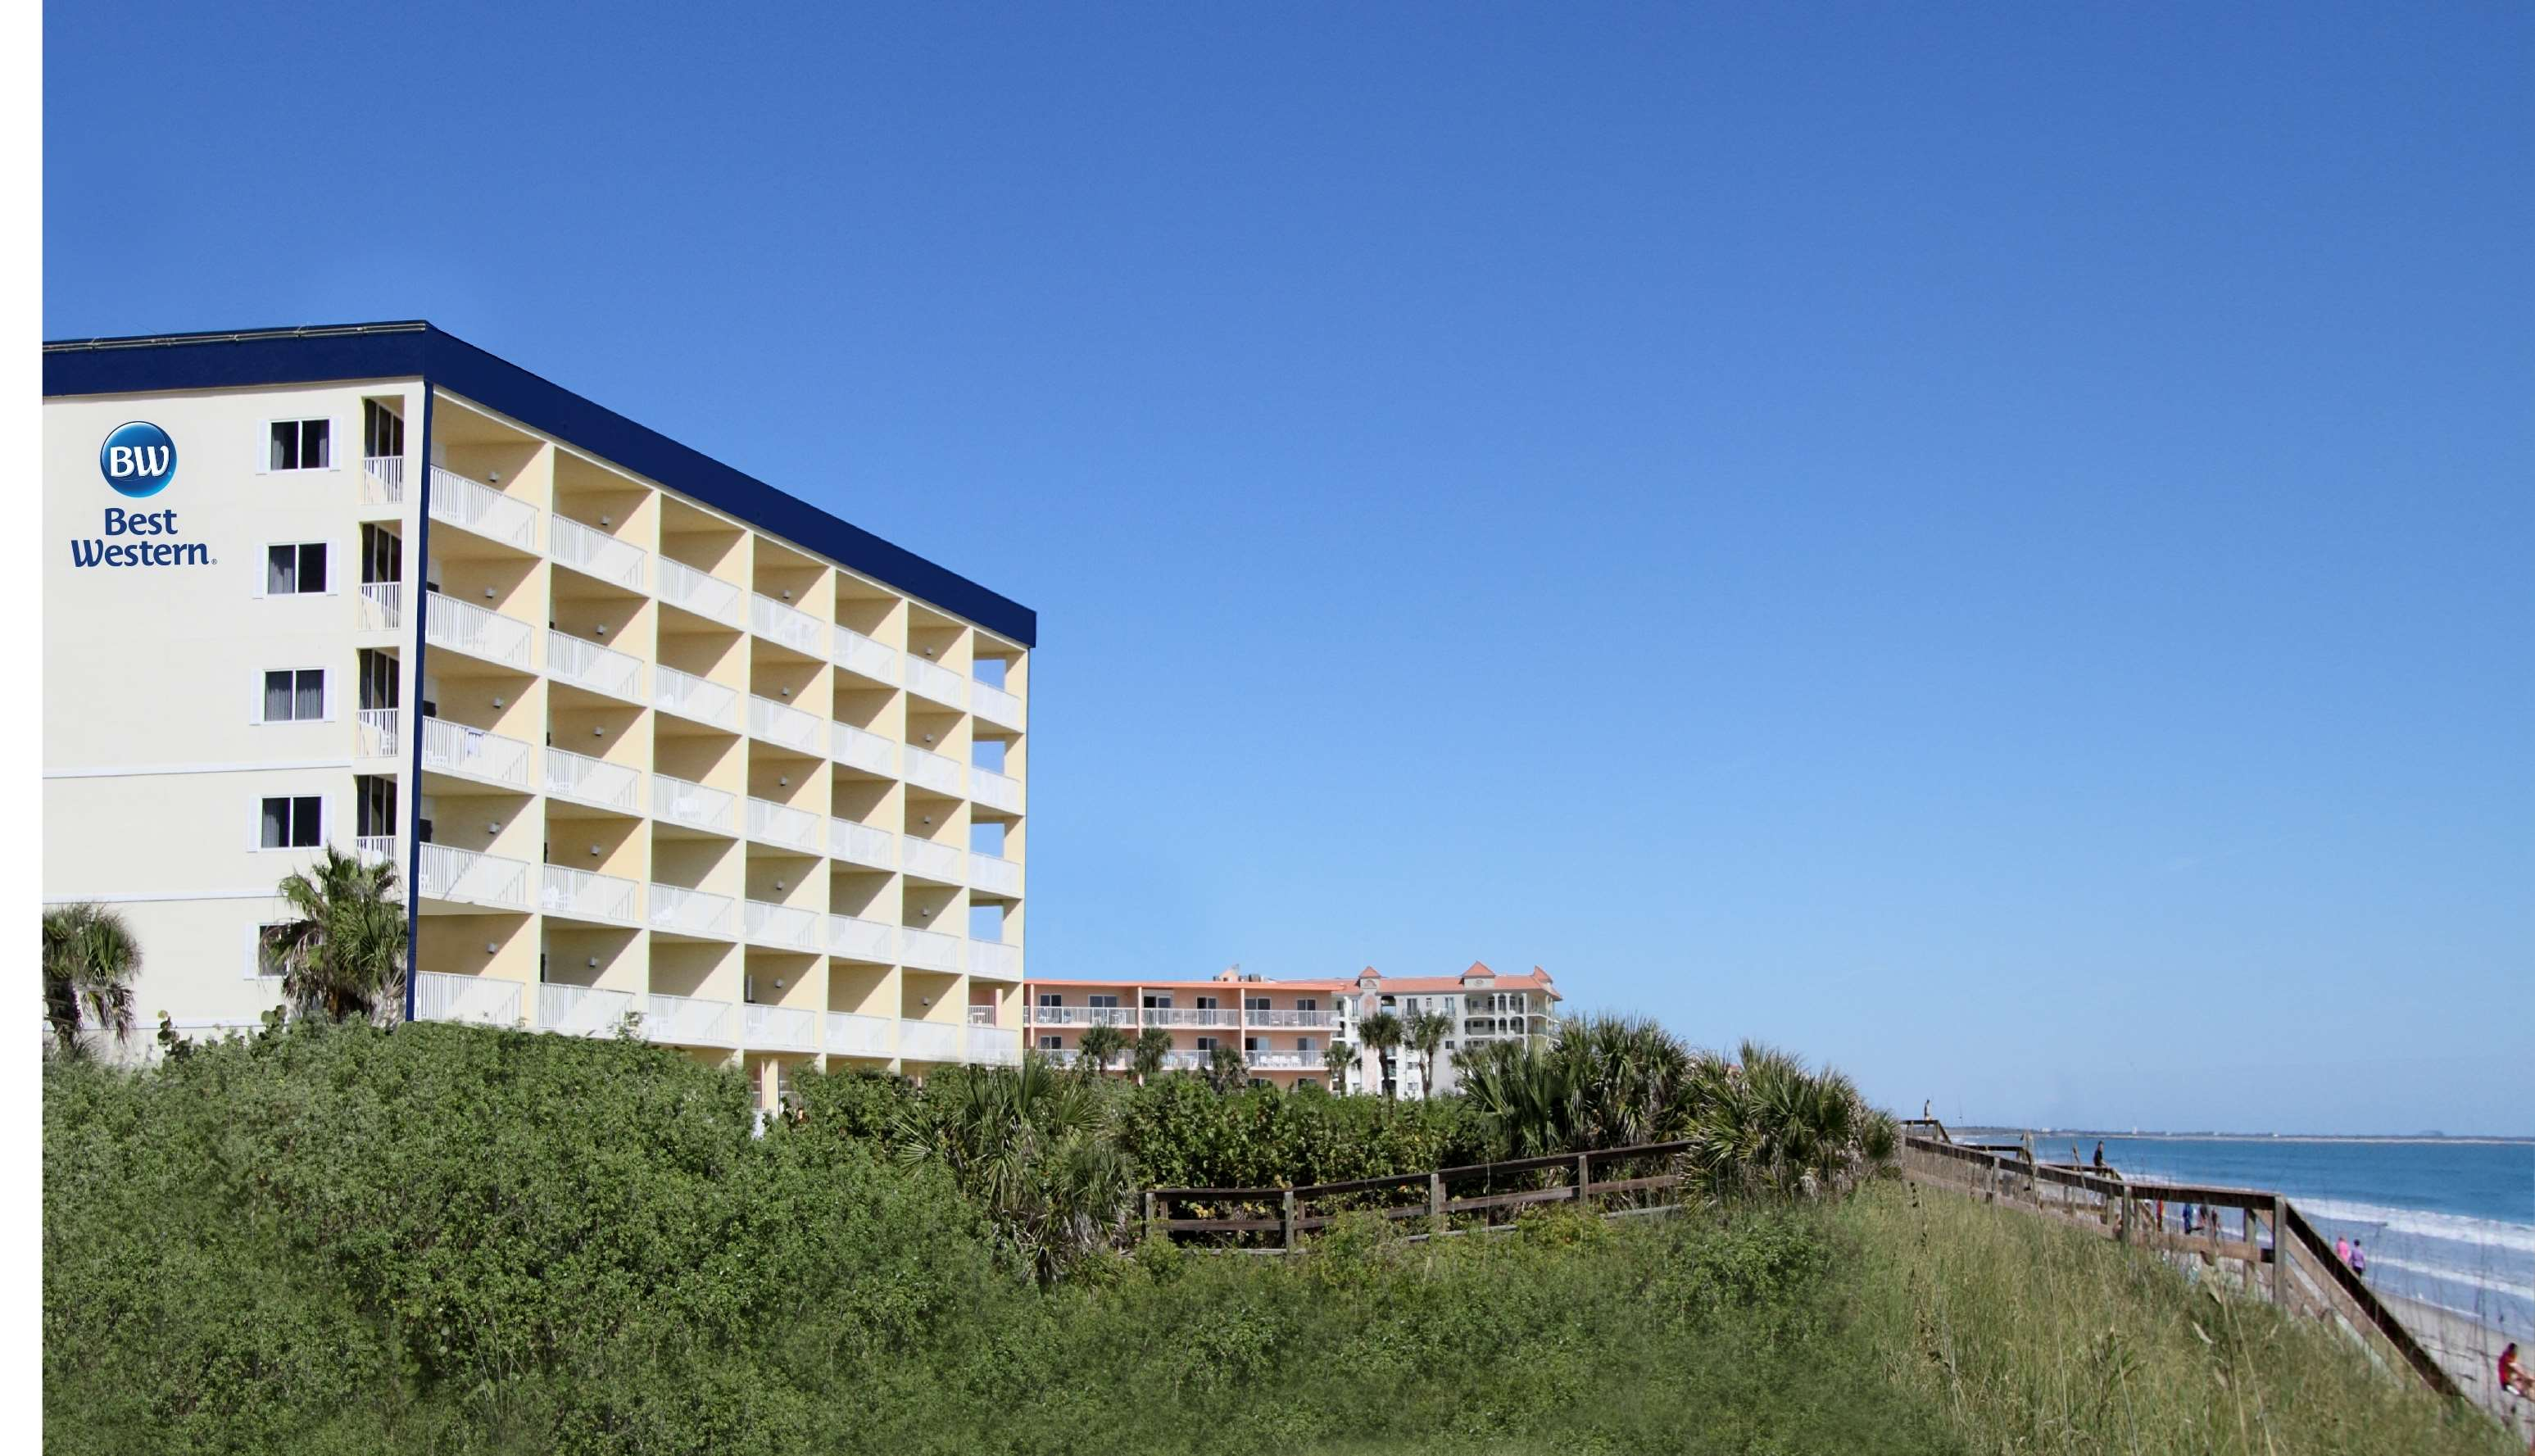 Best Western Cocoa Beach Hotel & Suites image 2